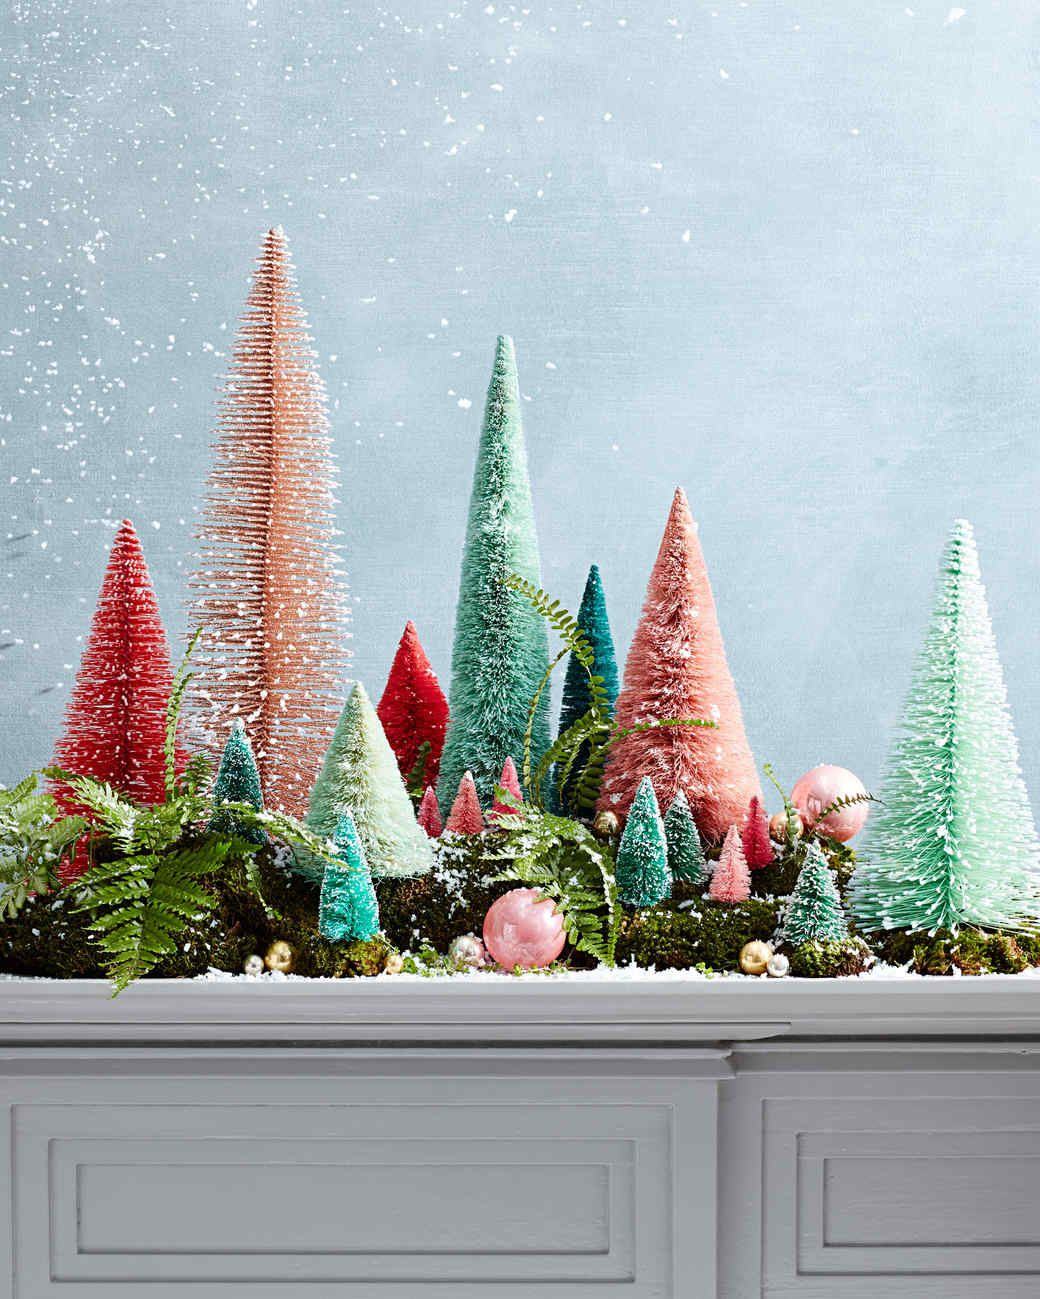 Miniature Christmas Tree Mantel Display In 2020 Vintage Christmas Decorations Retro Christmas Decorations Cool Christmas Trees